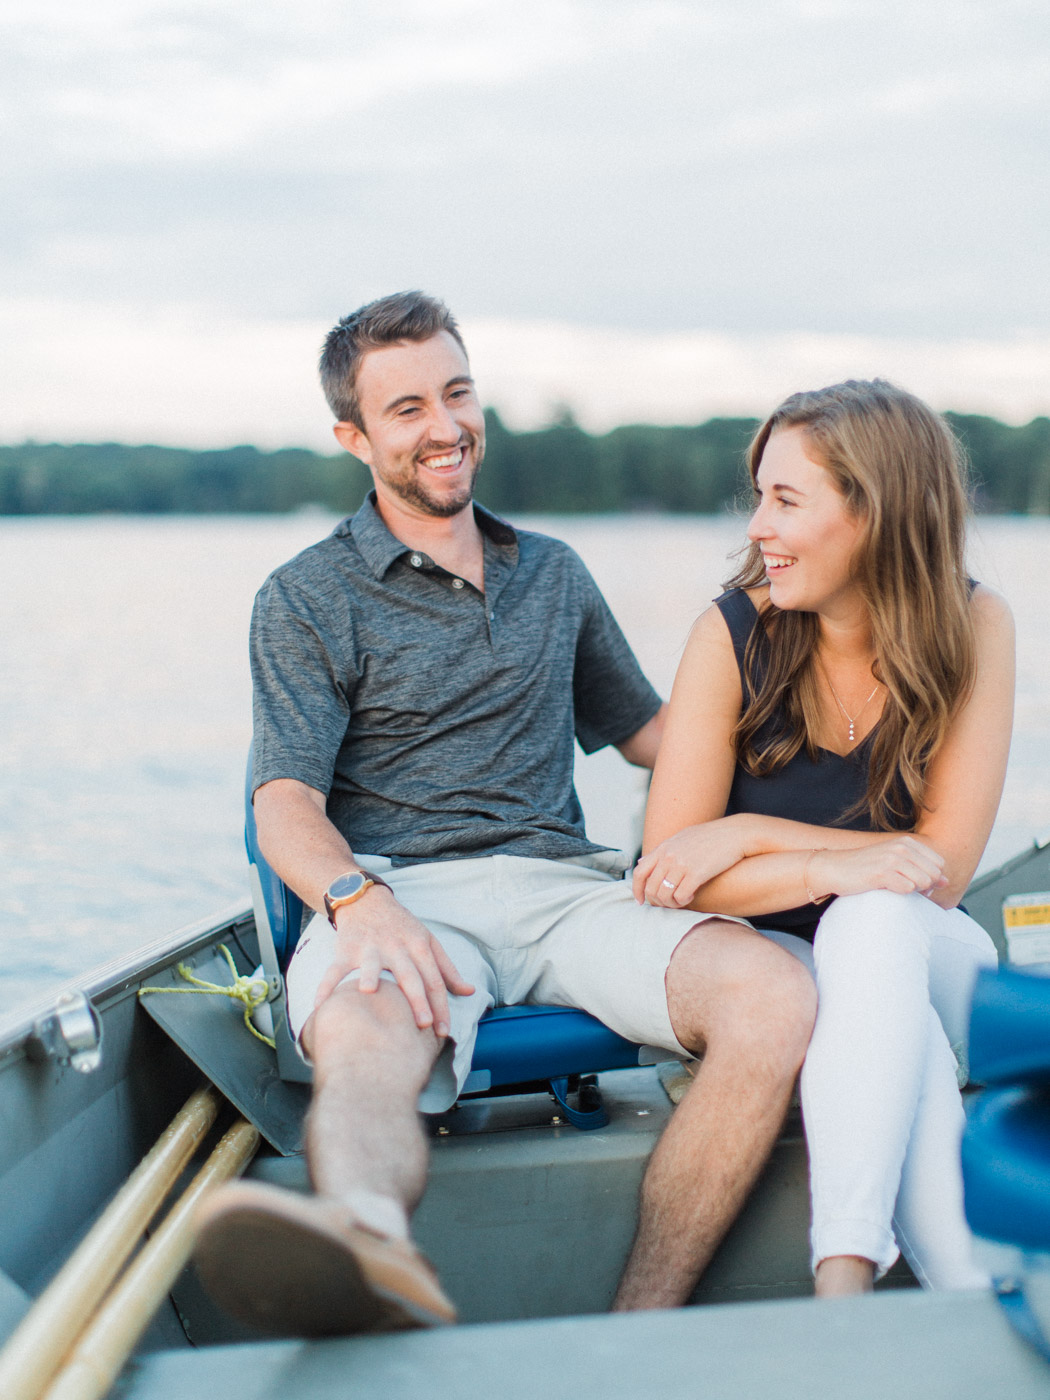 muskoka-wedding-photographer-adventurous-couples-engagement-session-lake-89.jpg